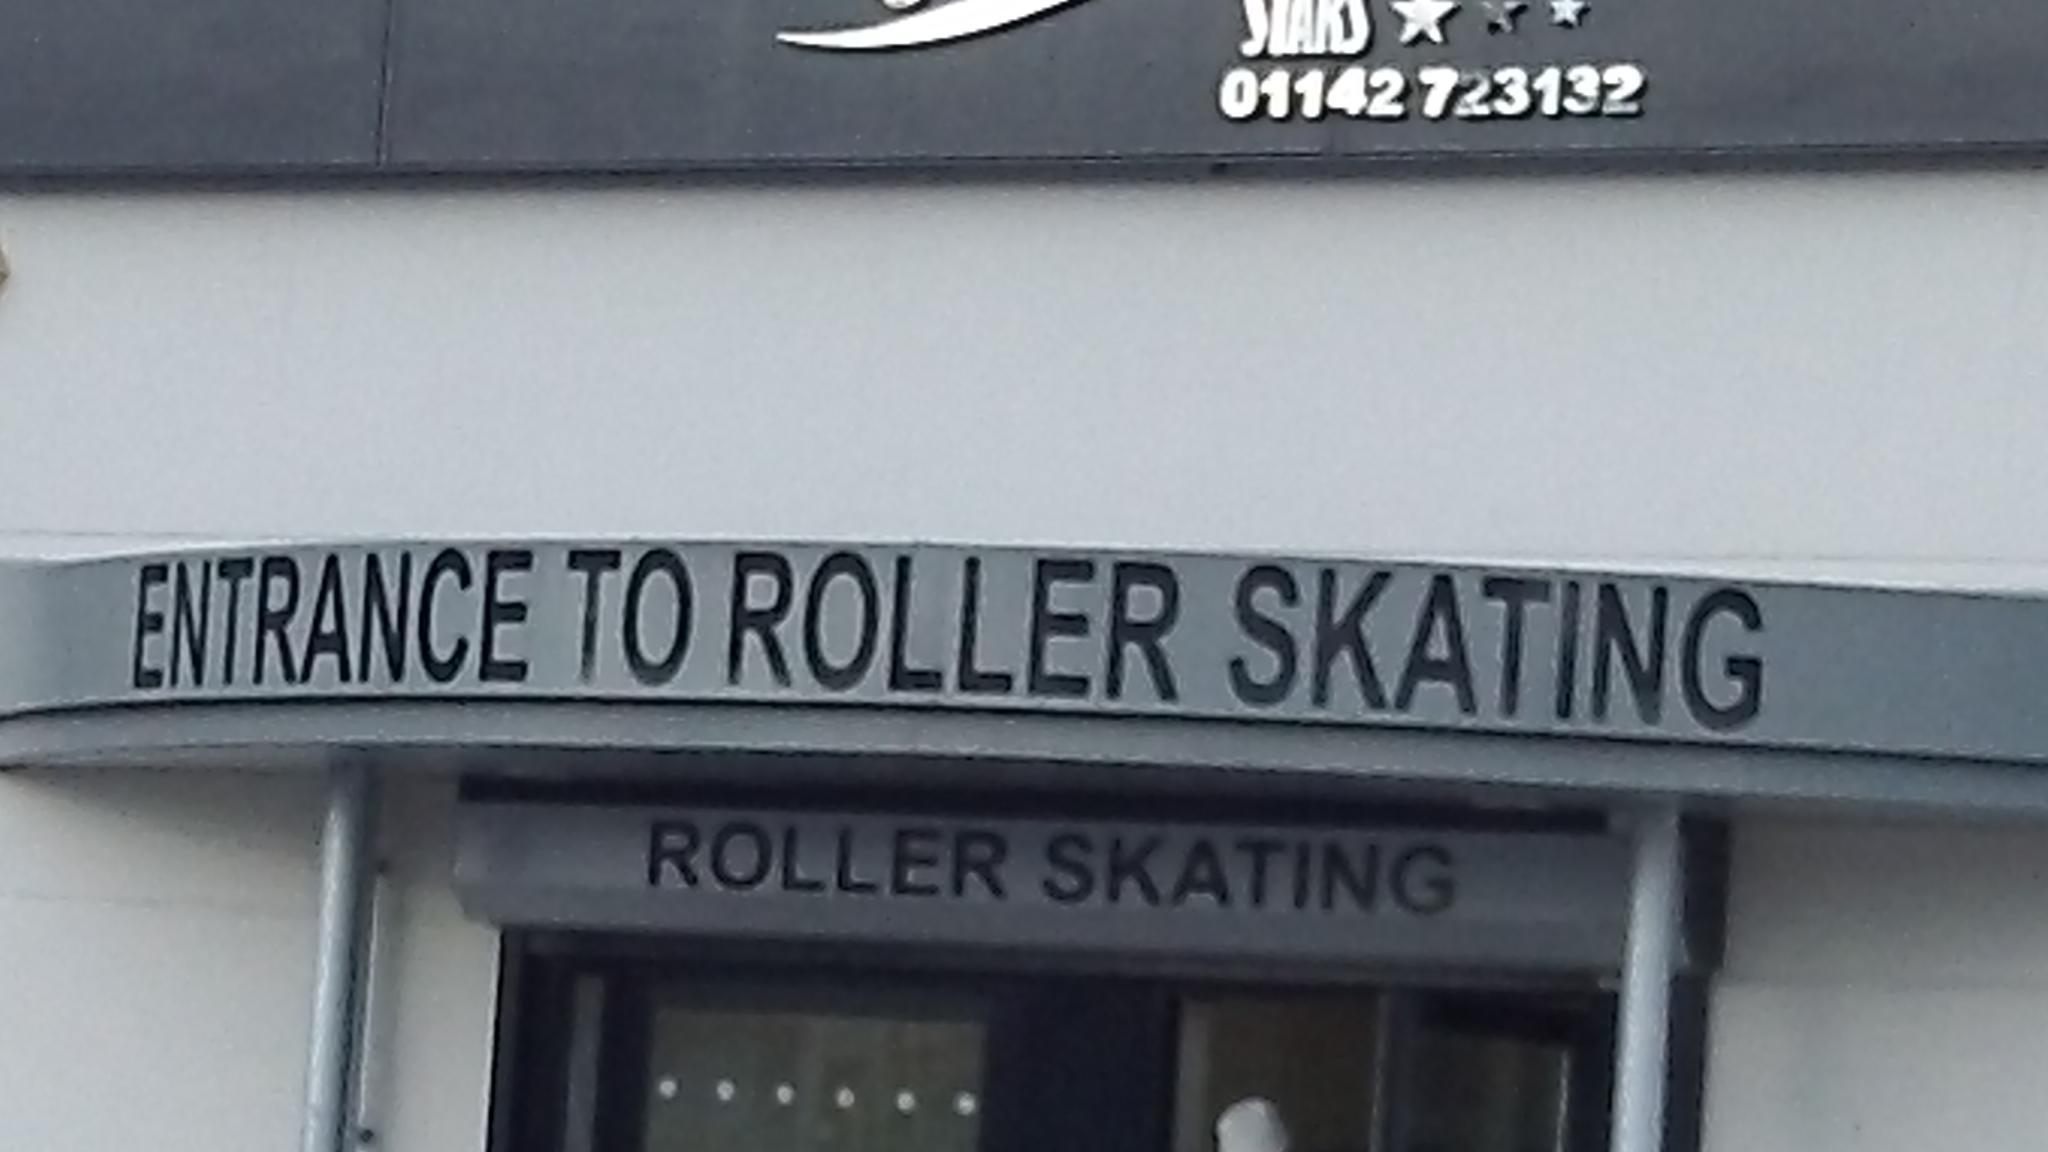 what day is rollerblading on in 3 week time?